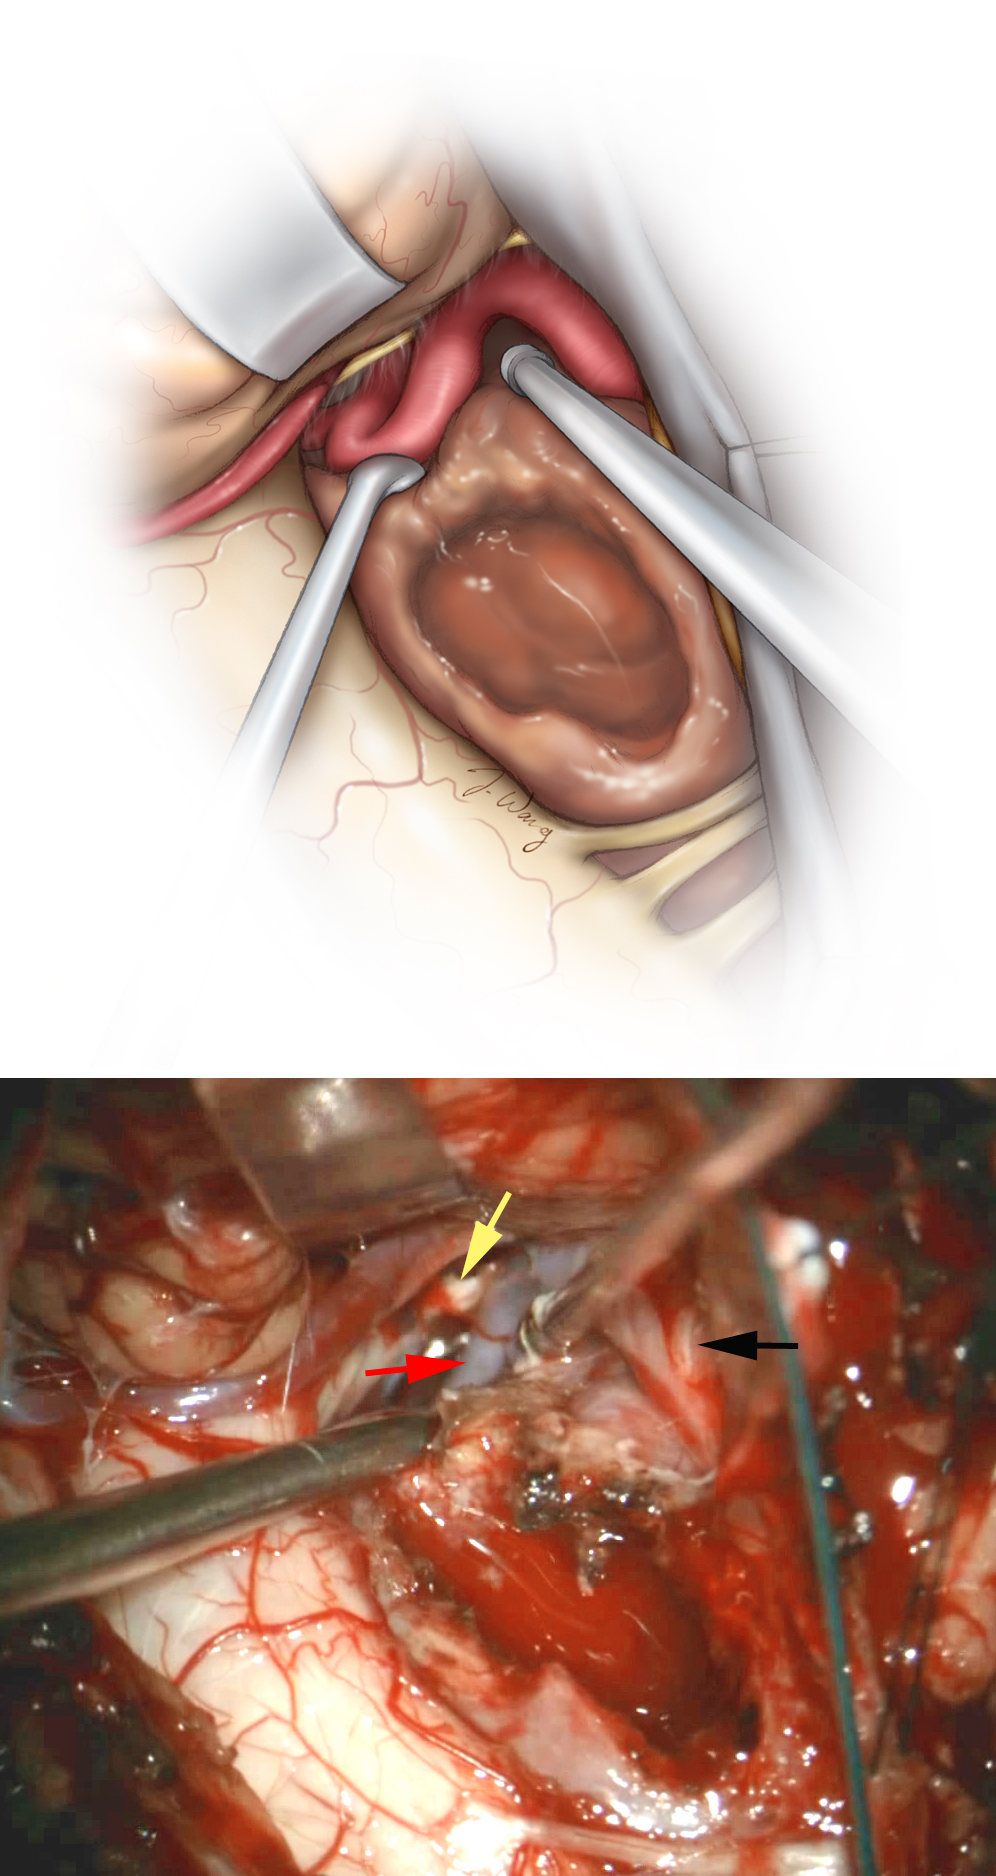 Figure 9: Mobilization of the debulked tumor is an important step in identification and localization of the important neurovascular structures. The vertebral artery and PICA can be adherent to the lateral and superior poles of the tumor capsule or encased within the mass (bottom photo, red arrow). The intradural entry site of the artery is exposed (black arrow). The lower cranial nerves are displaced superiorly and often not adherent to the tumor unless the tumor extends into the jugular foramen (yellow arrow). The vertebral artery may be dissected free and covered with a small cottonoid patty—The use of an ultrasonic aspirator close to the artery can easily lead to its irreversible injury.